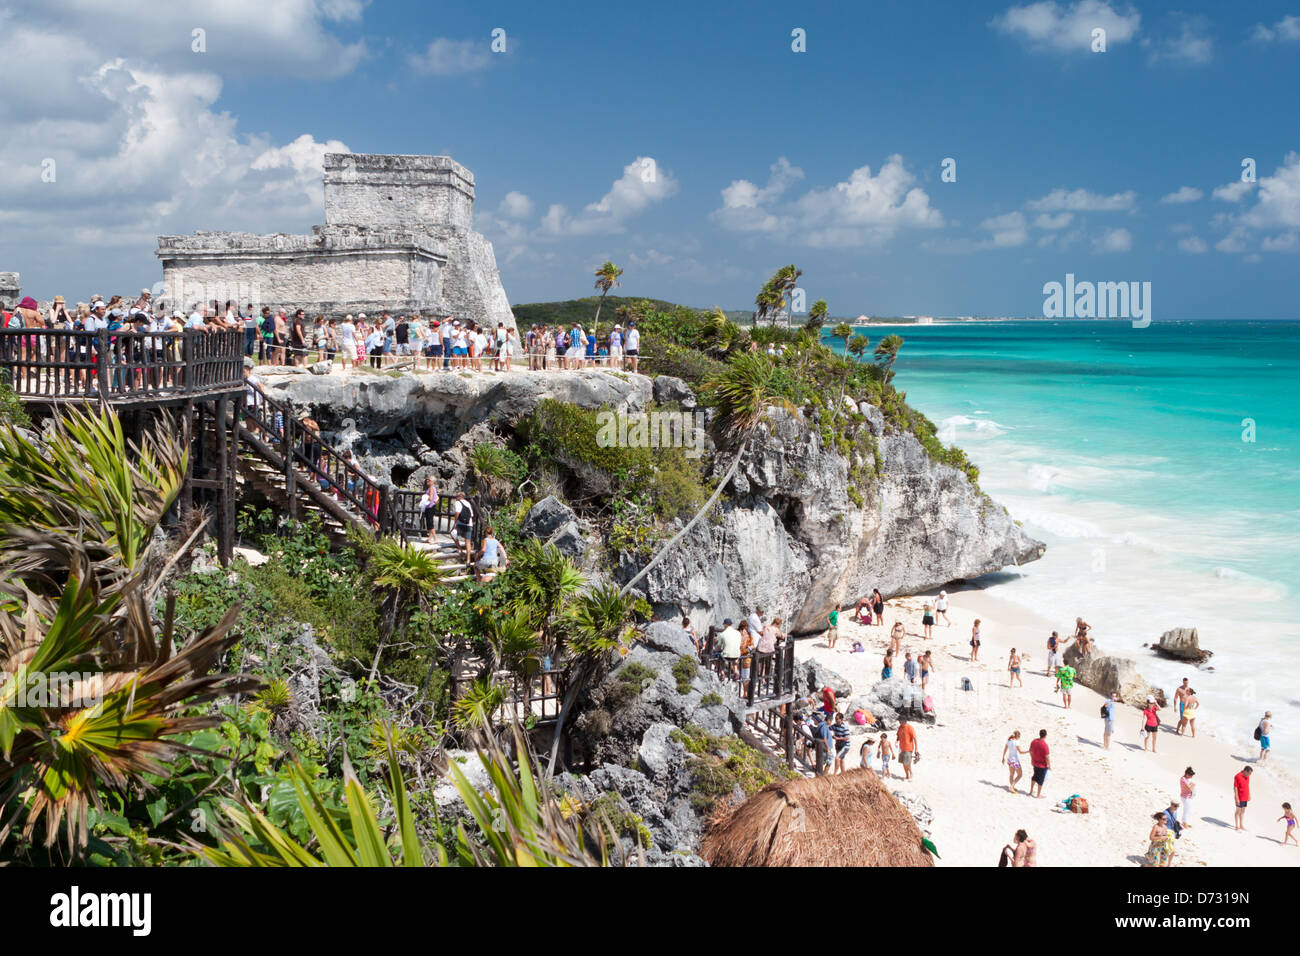 Mayan Ruins in the ancient city of Tulum, Yucatan, Mexico - Stock Image